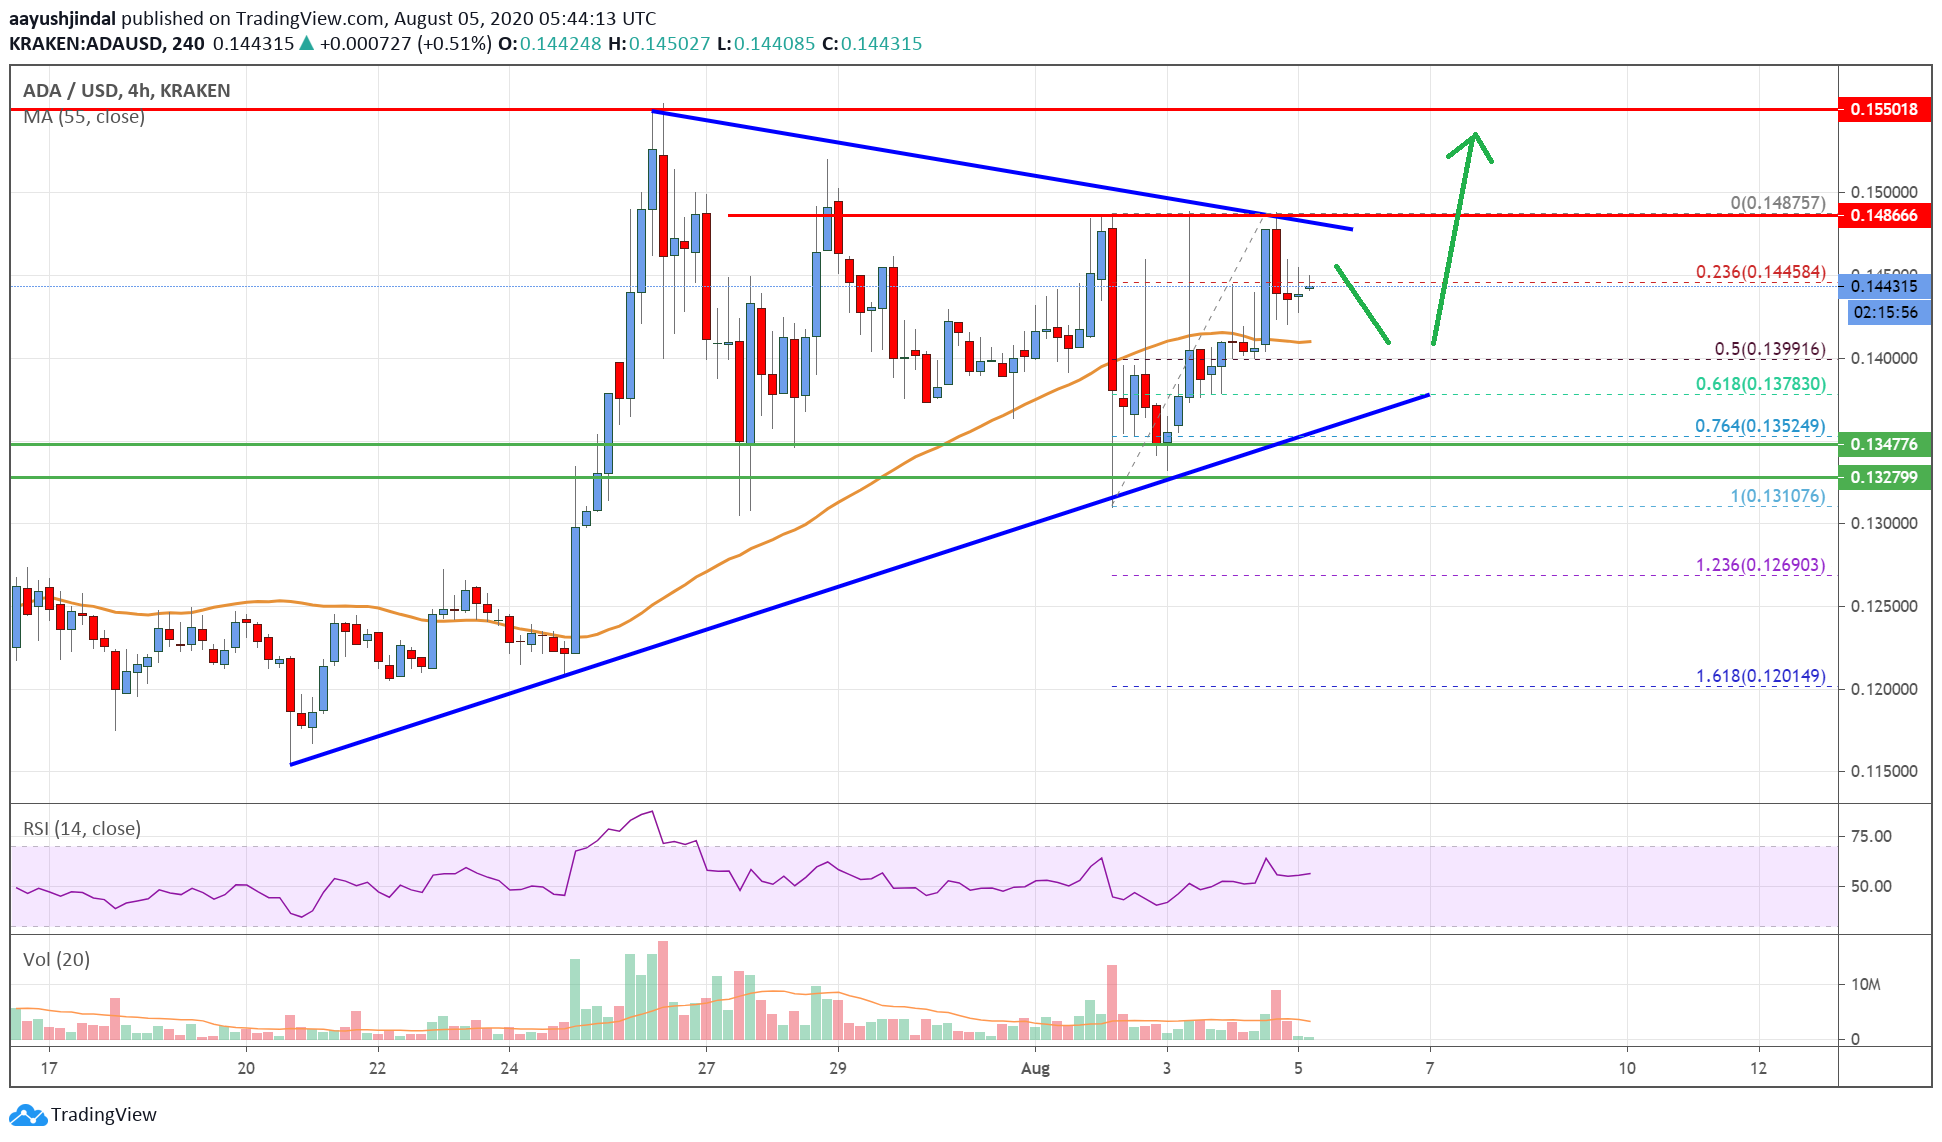 Cardano (ADA) Price Analysis: Price Action Suggests More Upsides